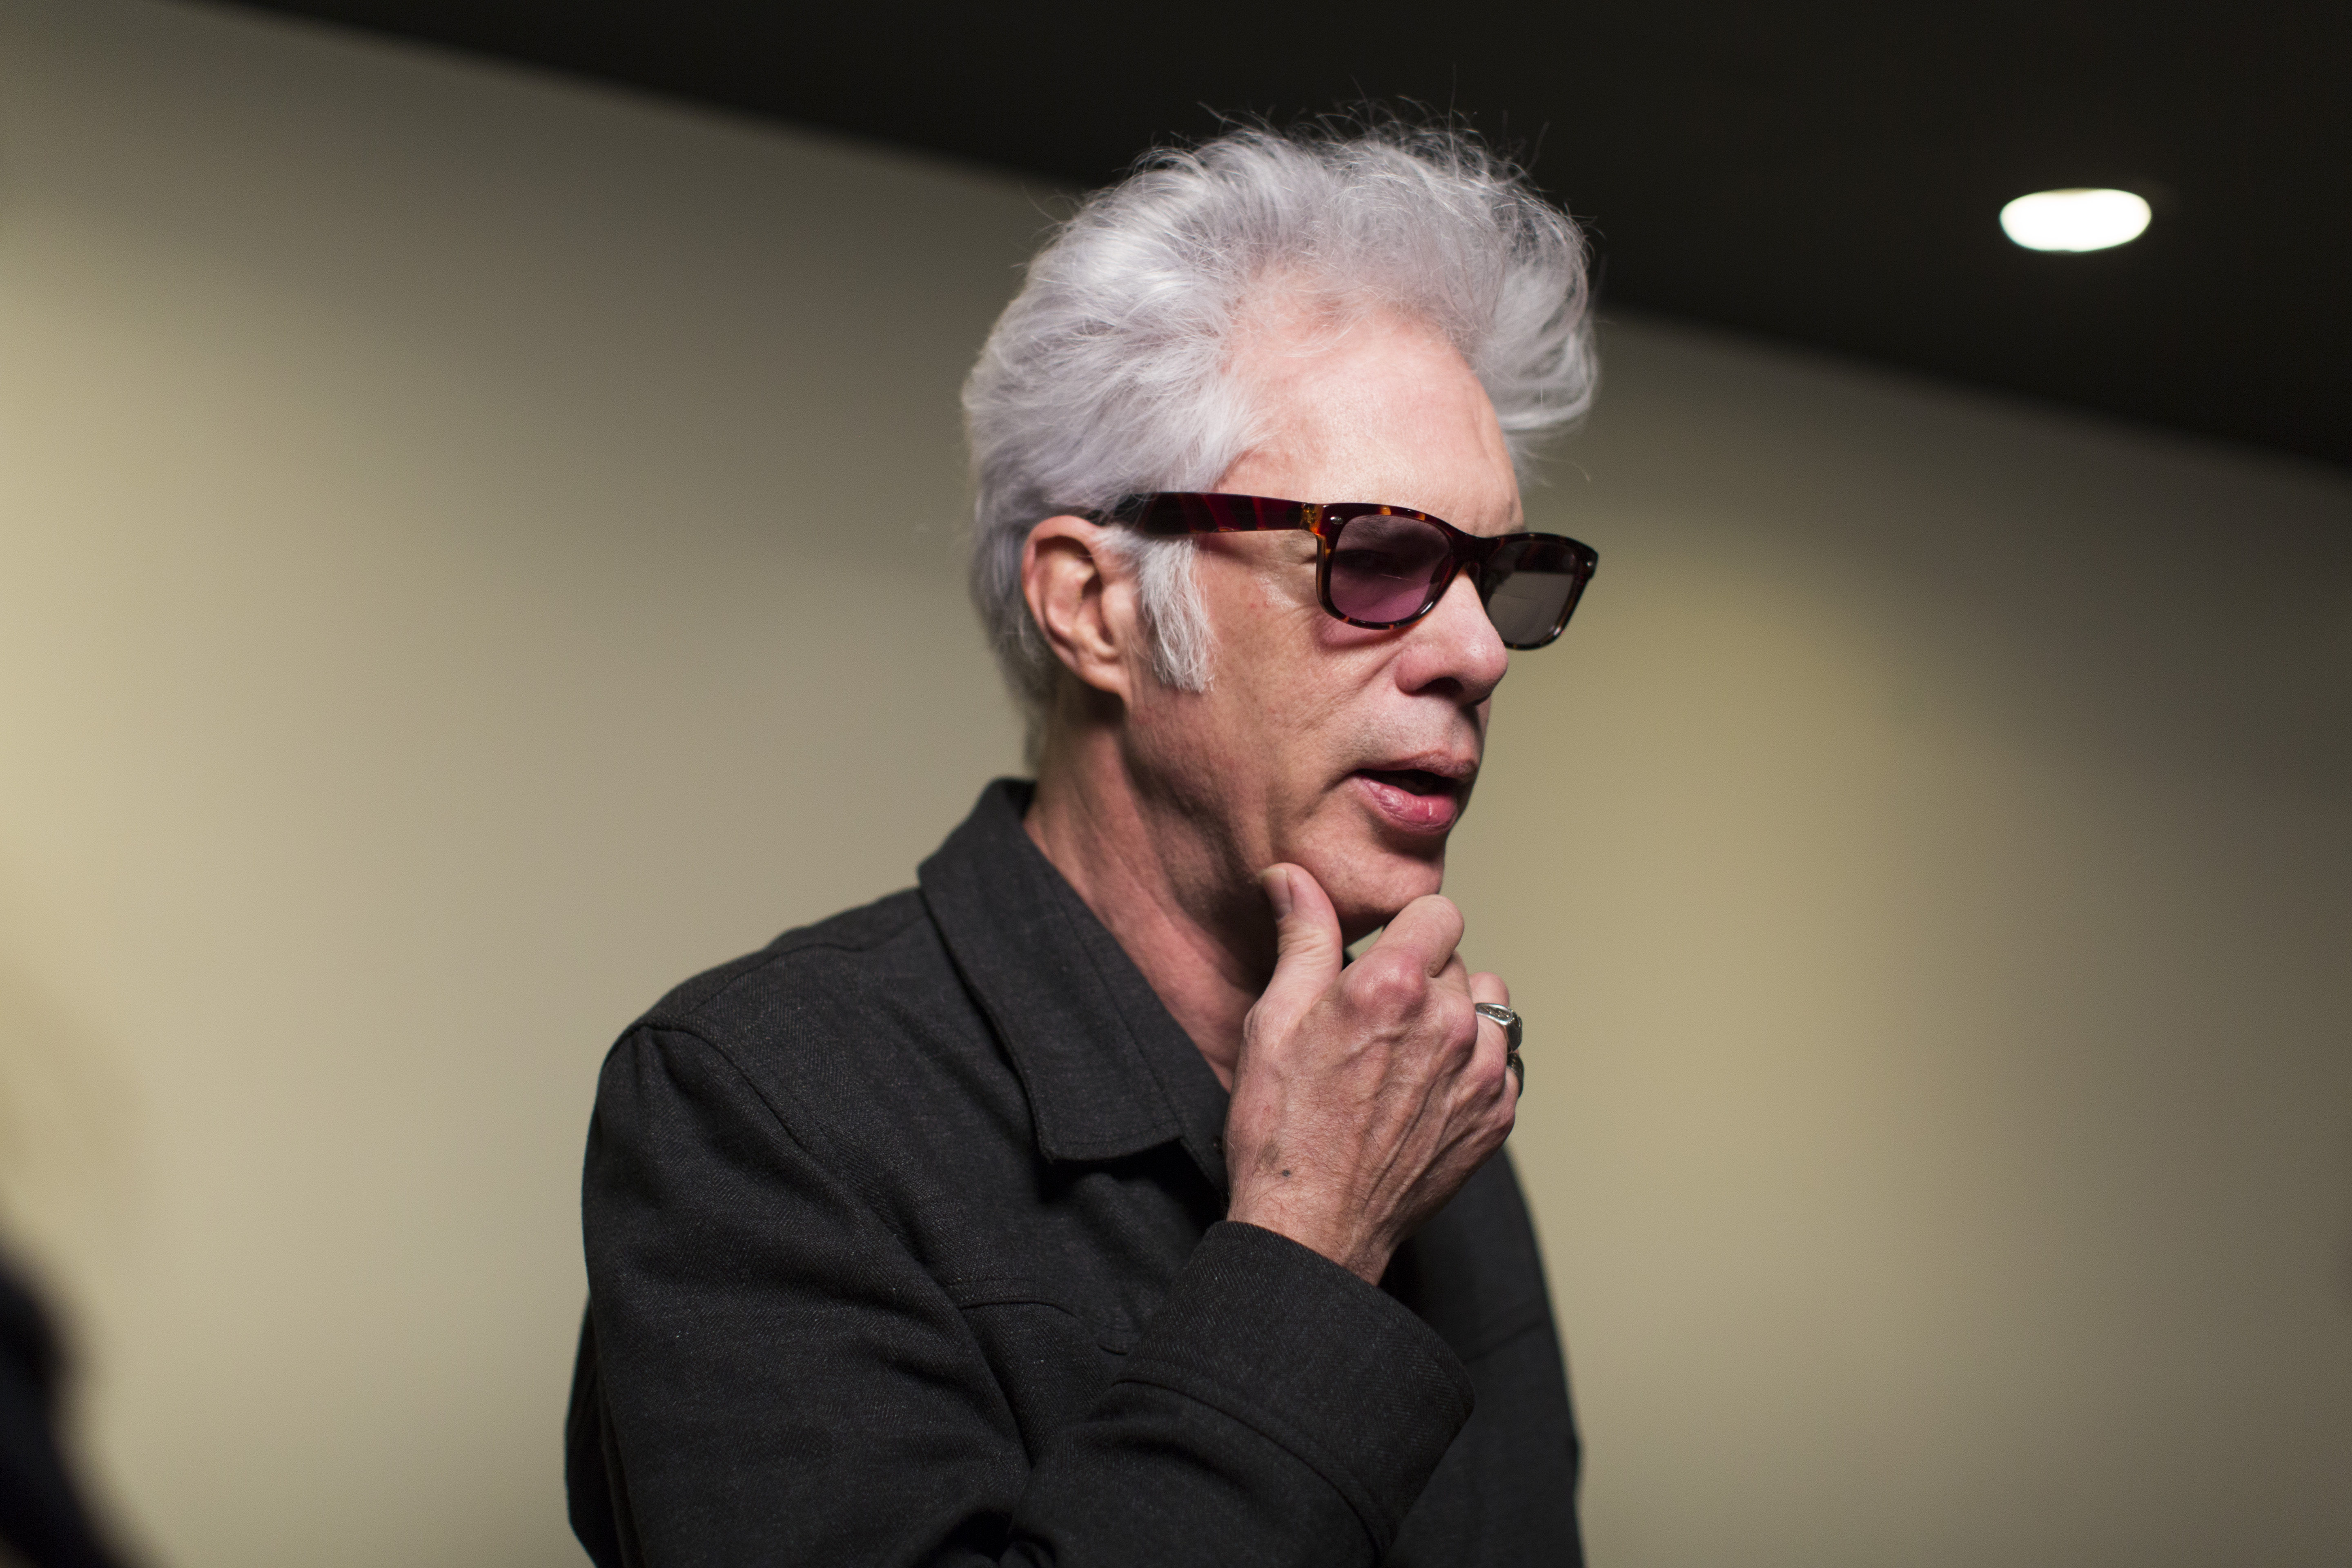 Jim Jarmusch'Paterson' film premiere, Arrivals, Landmark Sunshine Cinemas, New York, USA - 15 Dec 2016